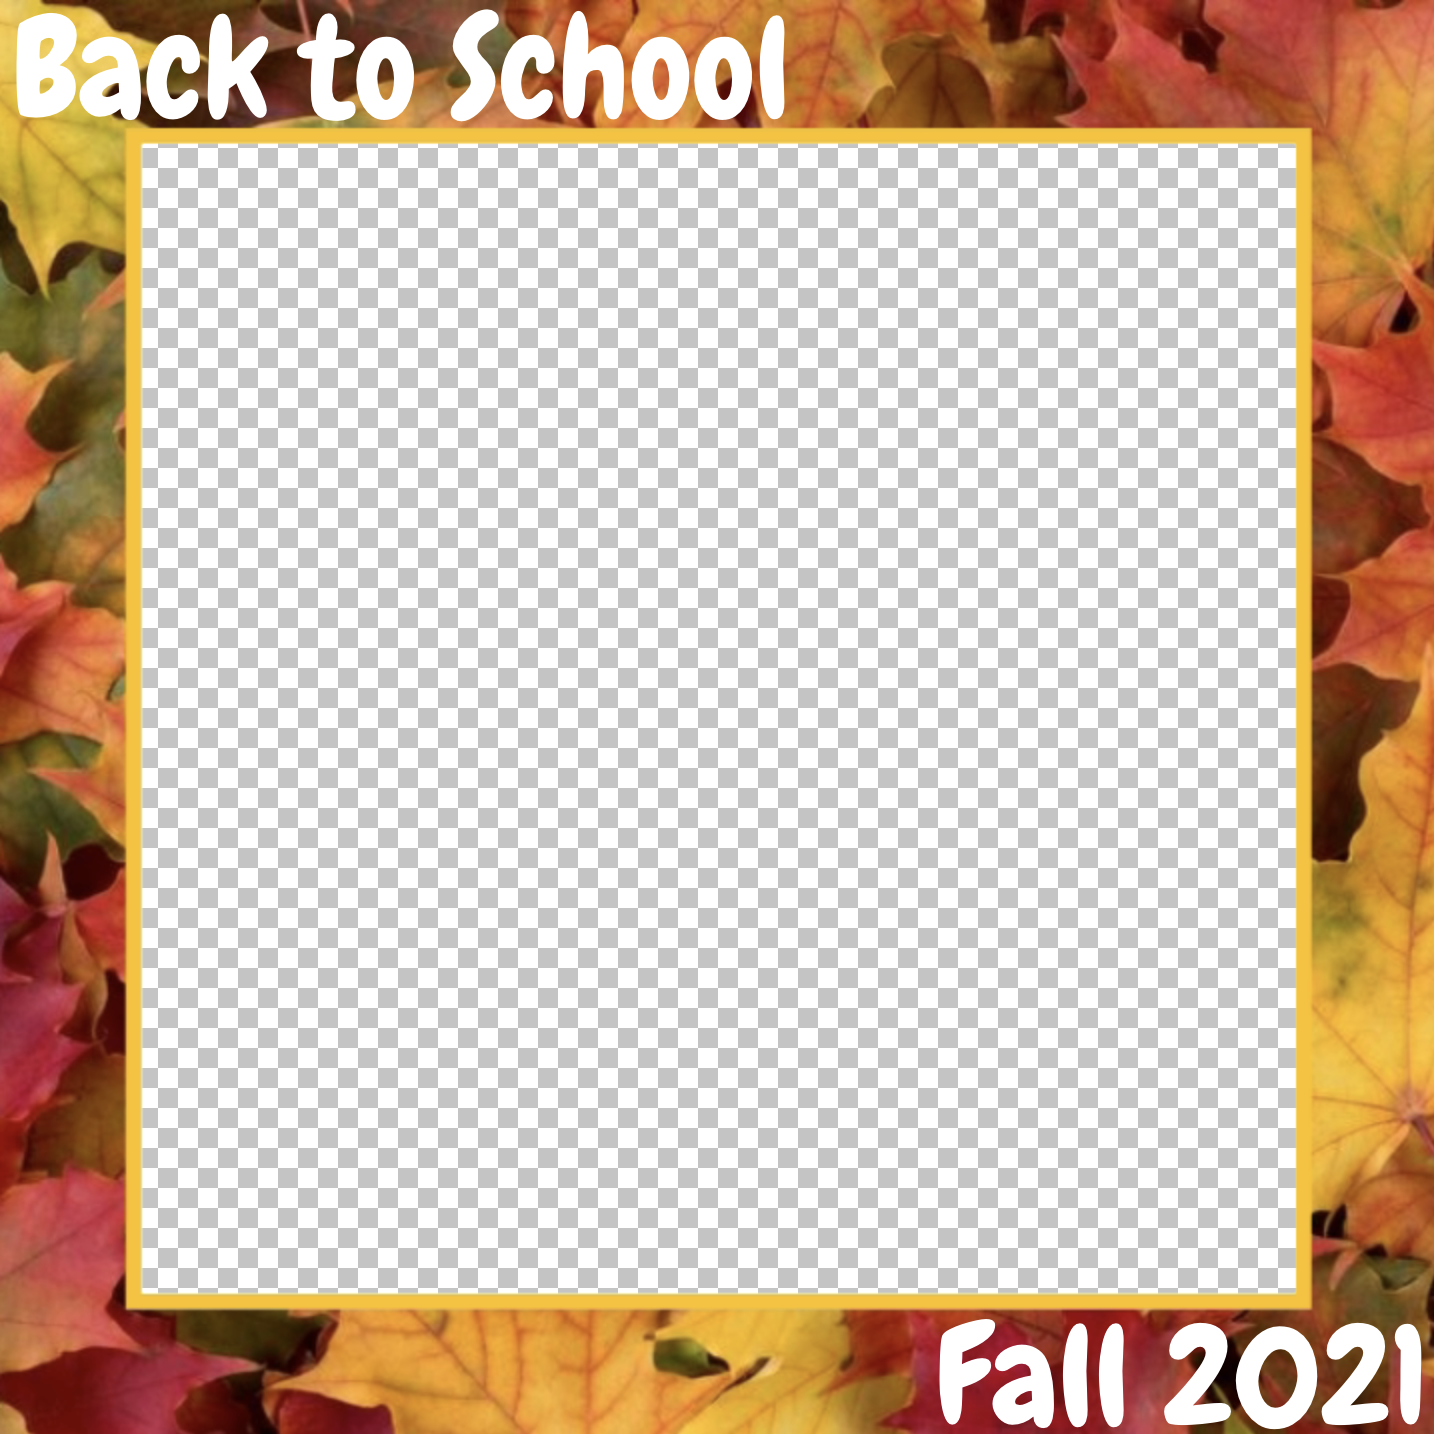 """A square photo frame featuring autumn leaves and displaying """"Back to School Fall 2021."""""""